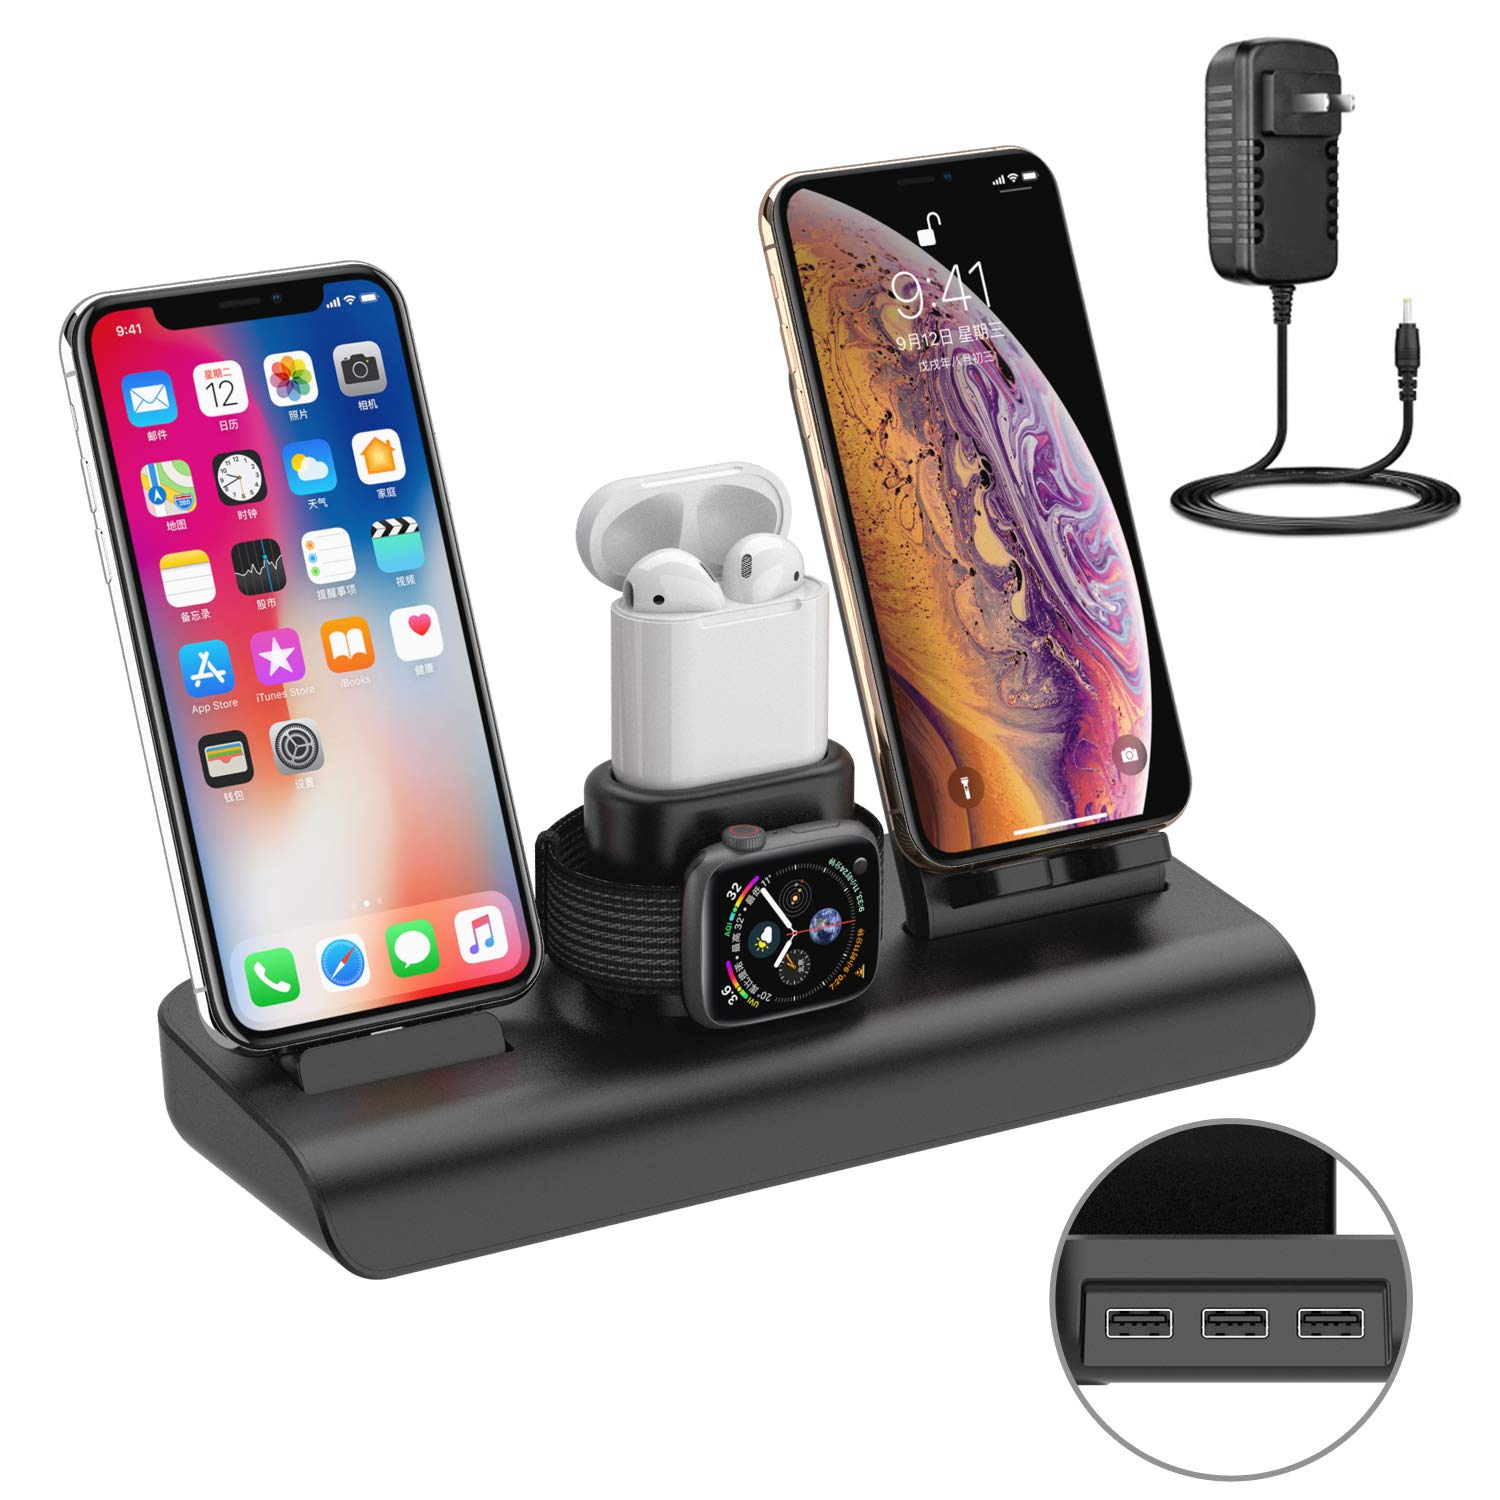 Wireless Charger Station Pad for iPhone,Apple Watch Charging Stand with iPhone Wireless Charger Stand Airpods Charging Dock Stand for iPhone X XS XR 8 Plus (Black)